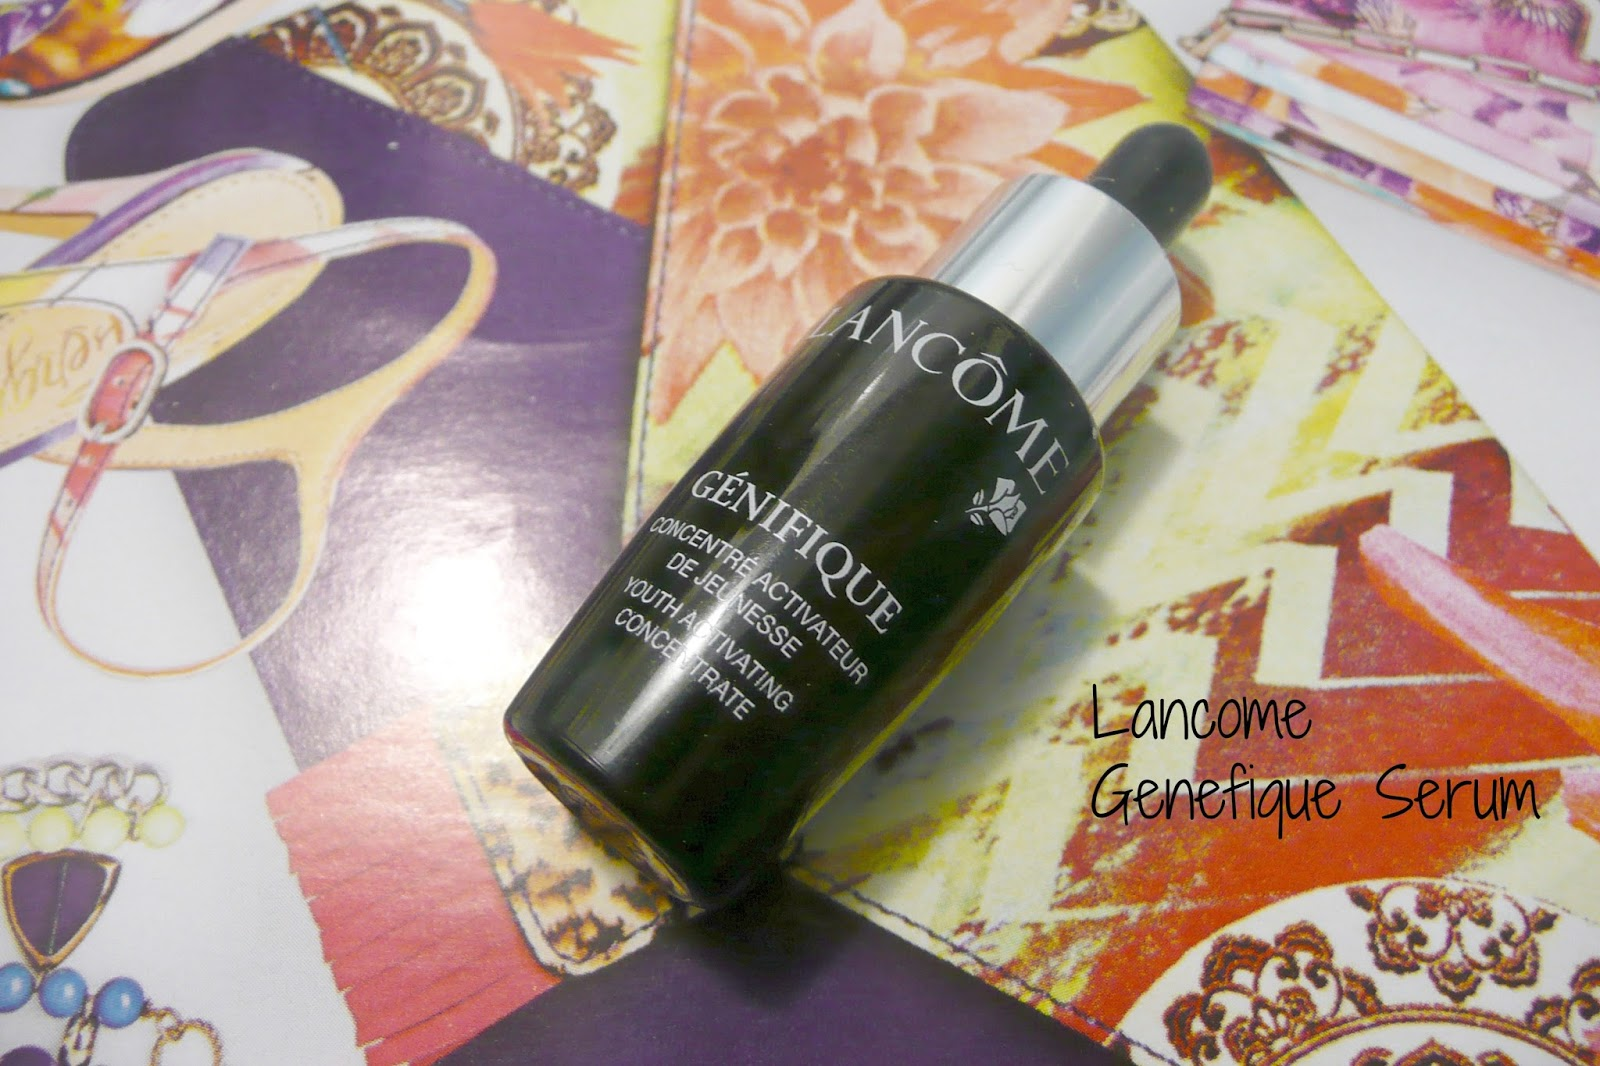 Lancome Genefique Review